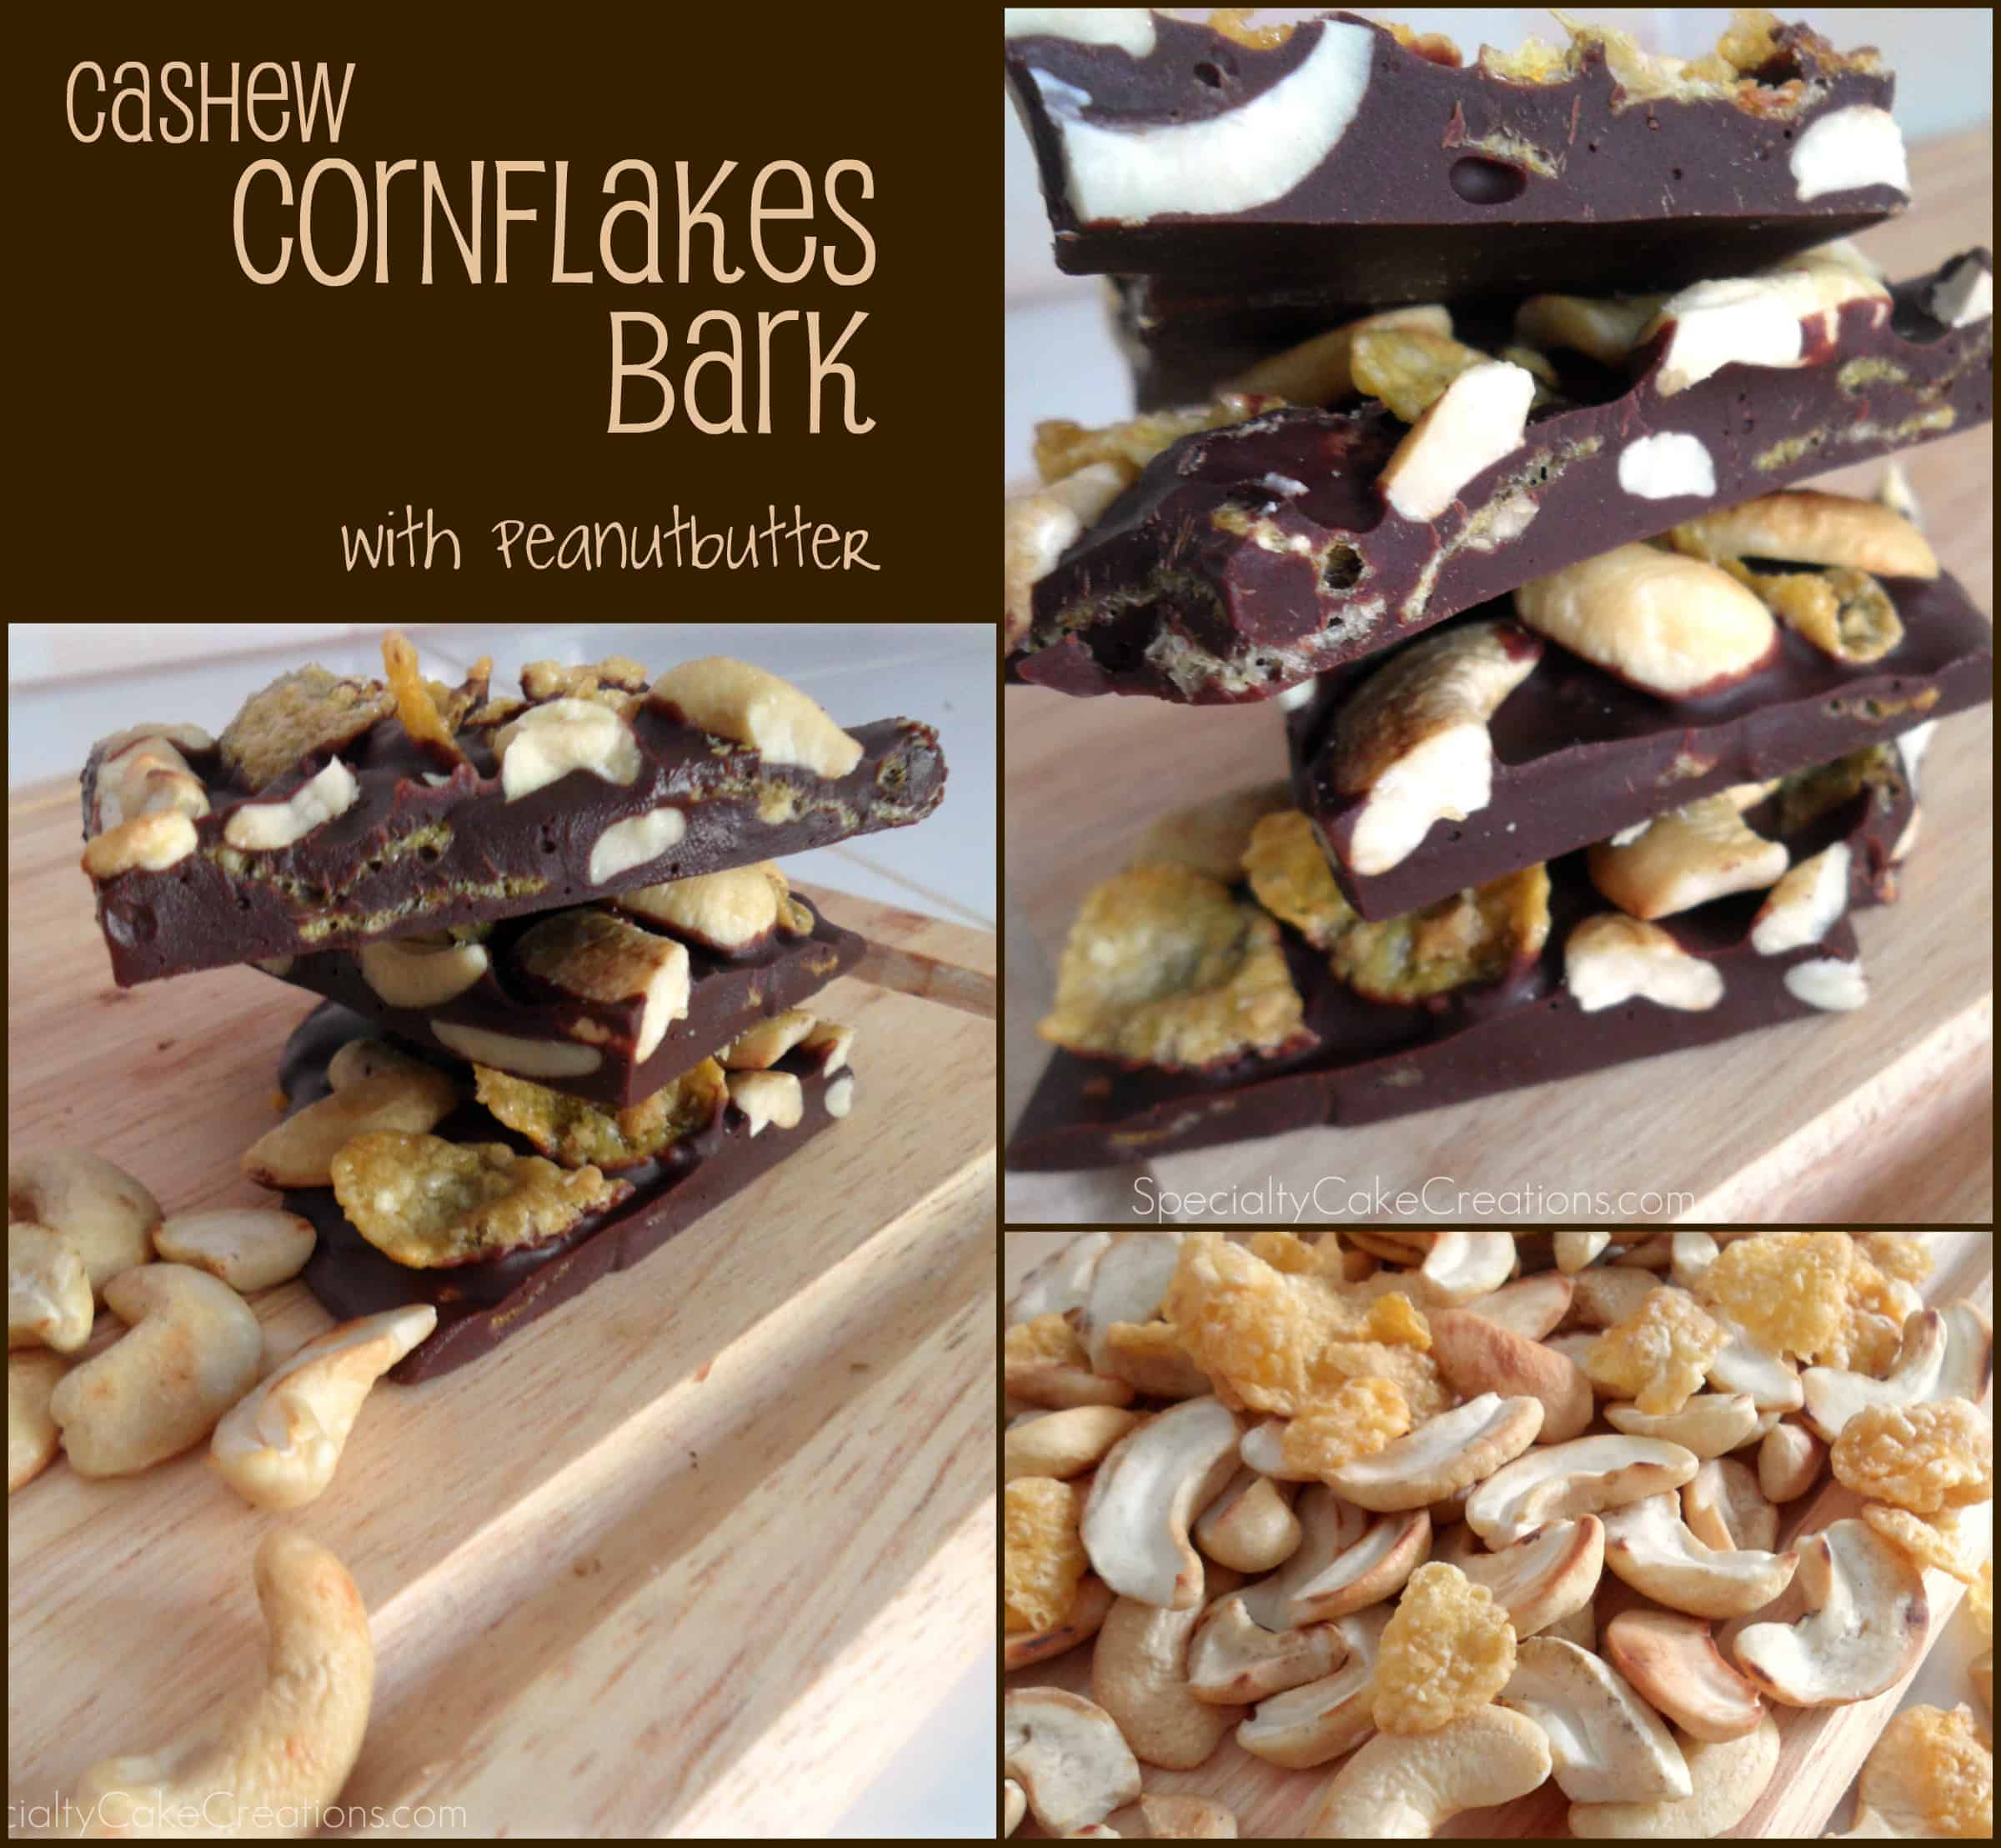 Cashew Cornflakes Bark with Peanutbutter